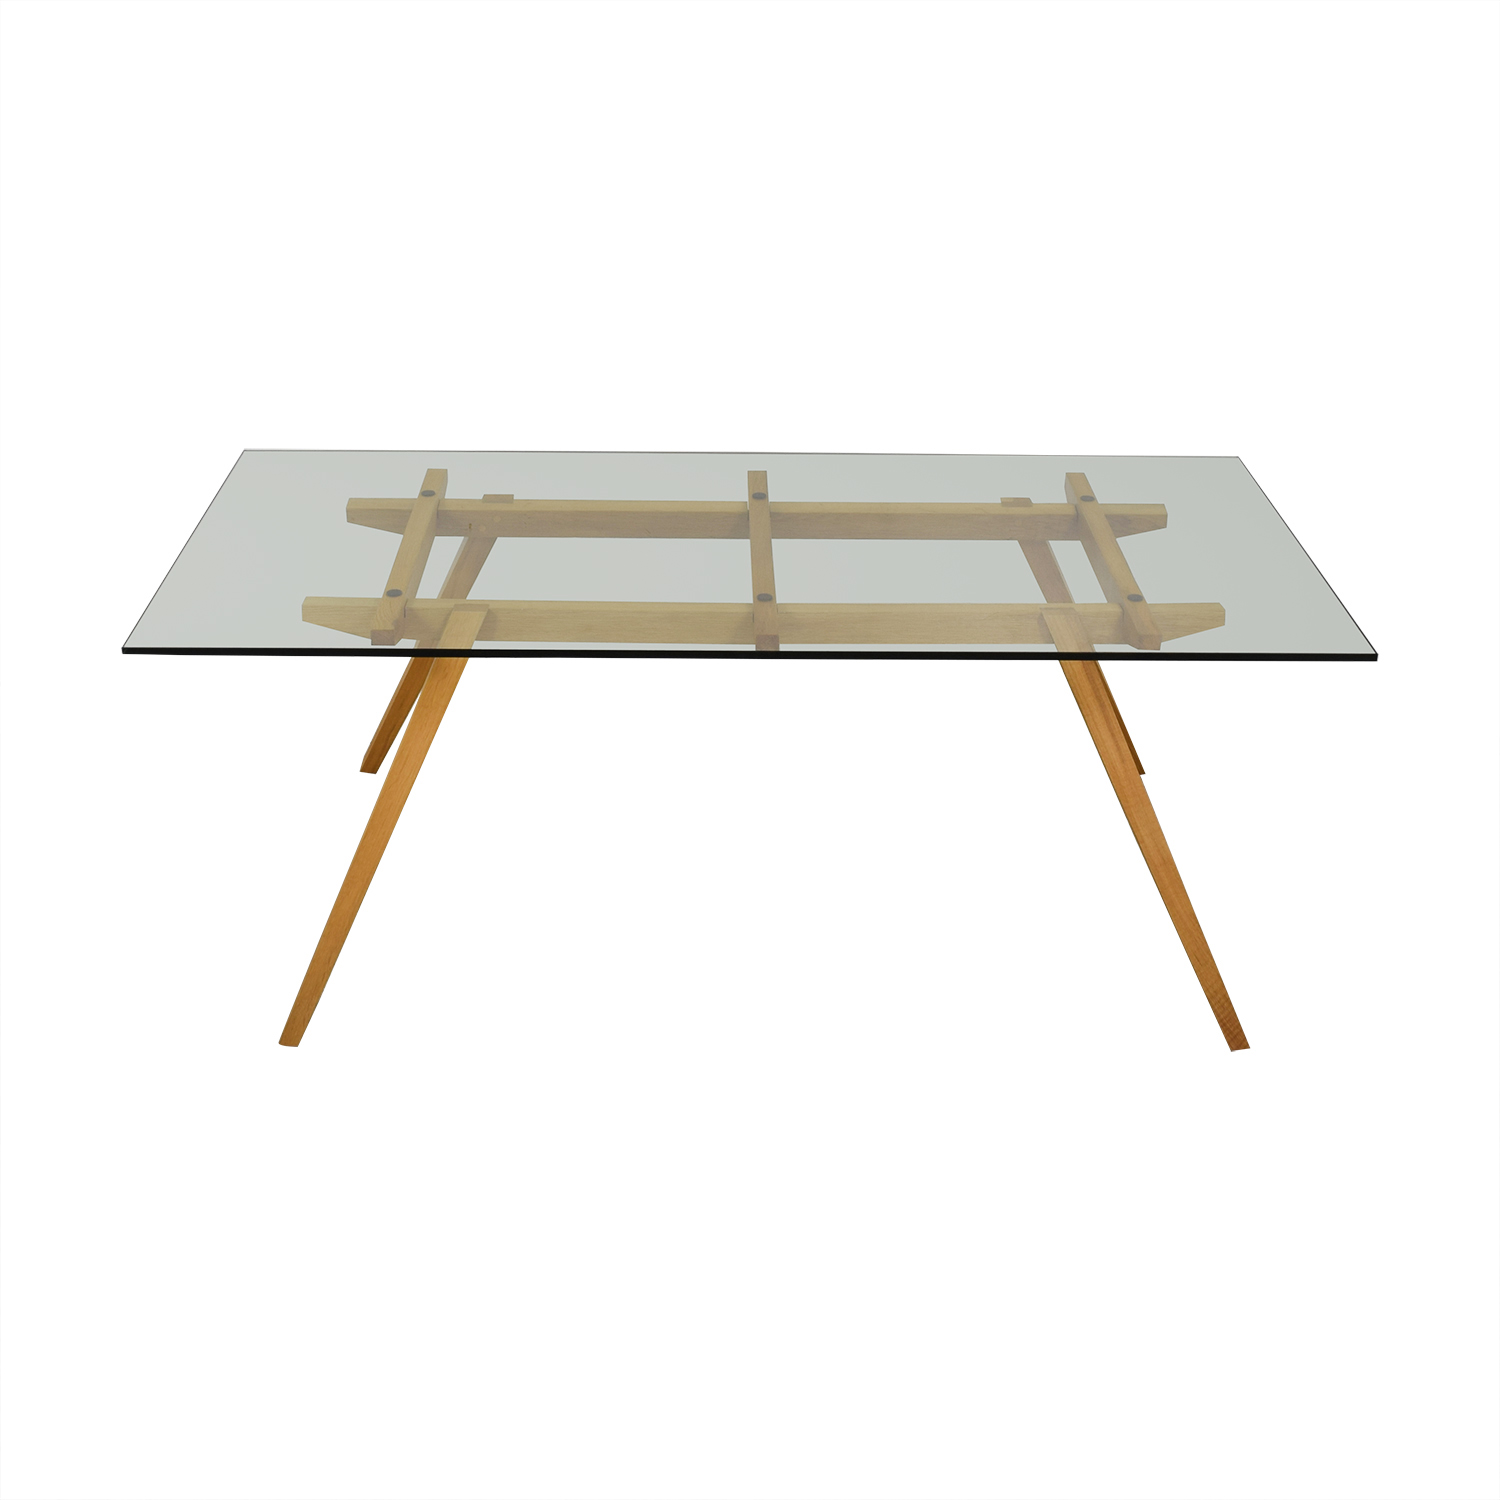 shop Organic Modernism Recoleta Glass and Wood Dining Table Organic Modernism